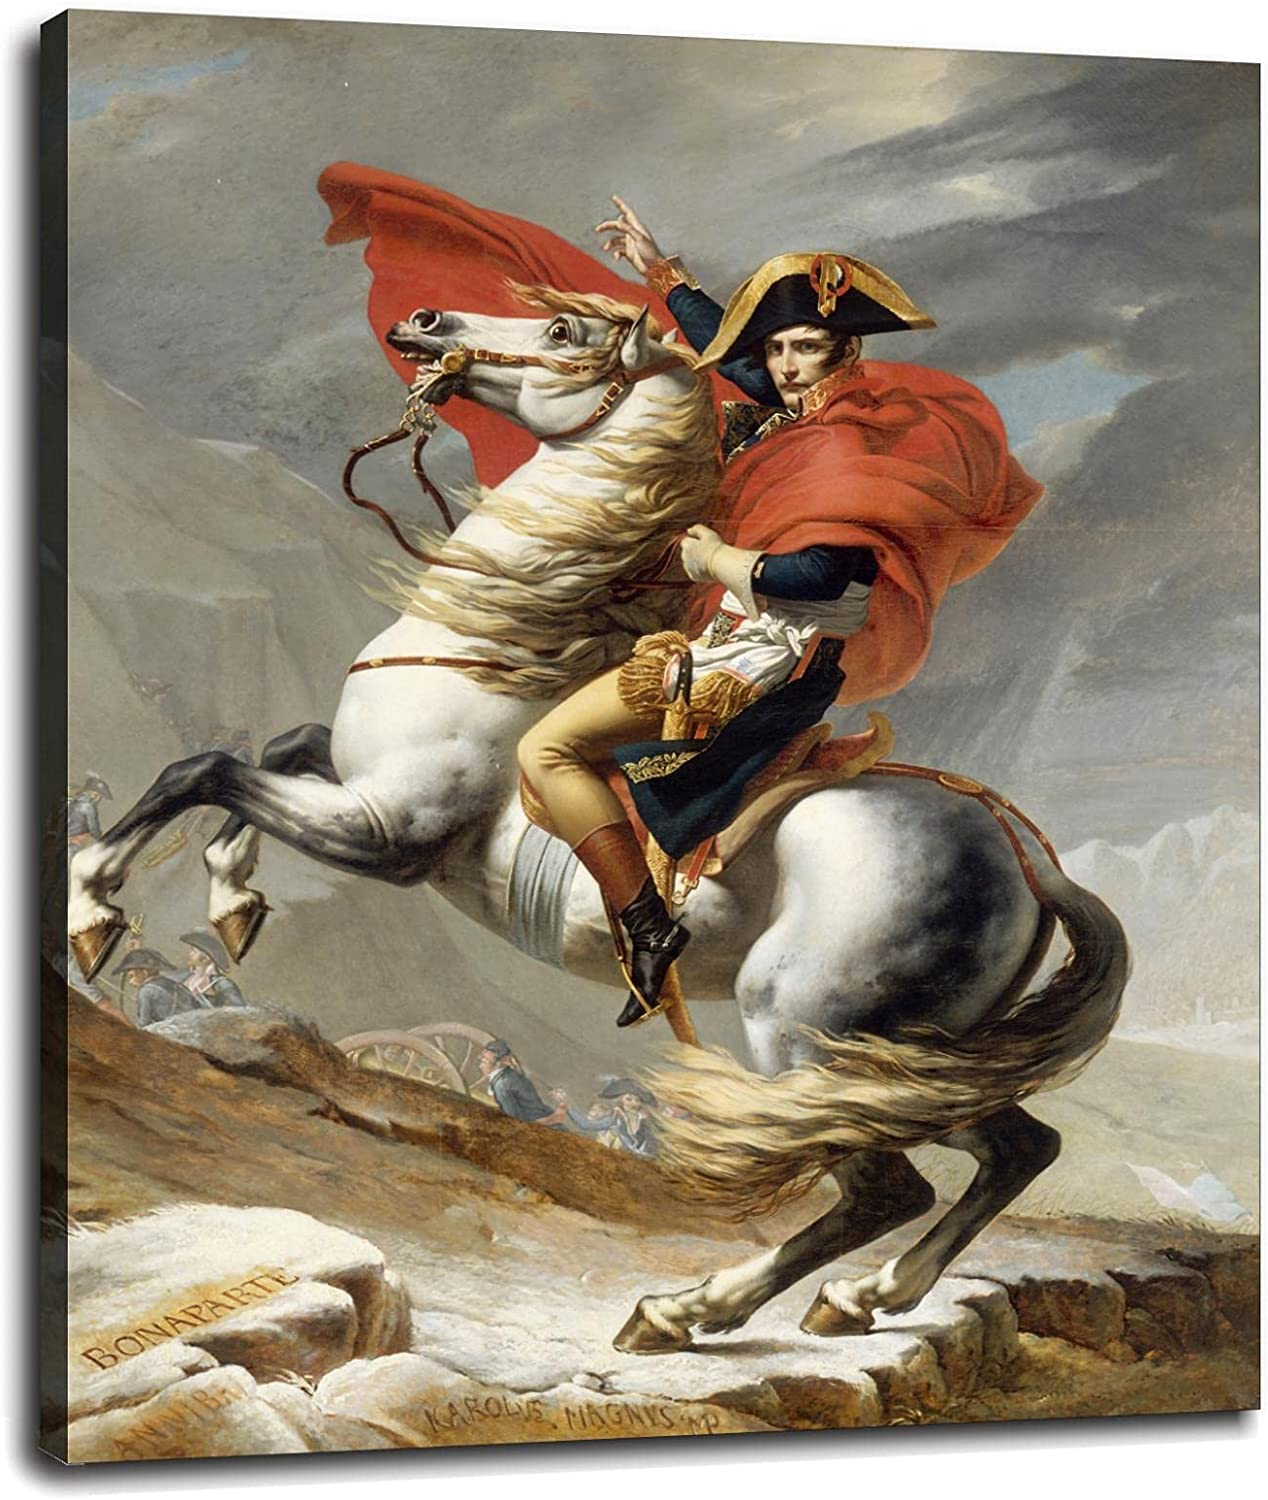 Napoleon Max 68% OFF Crossing The Alps Jacques-Louis A surprise price is realized Canvas Pri Poster David